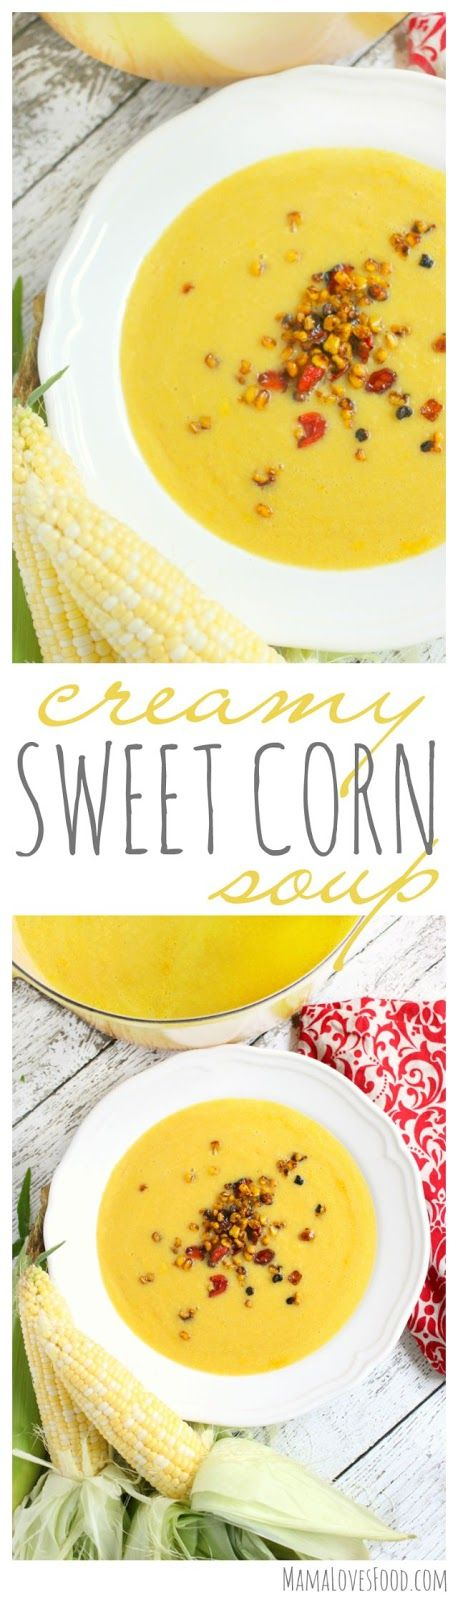 Creamy Sweet Corn Soup with Roasted Corn and Tomato Relish #ad #SwansonSummer